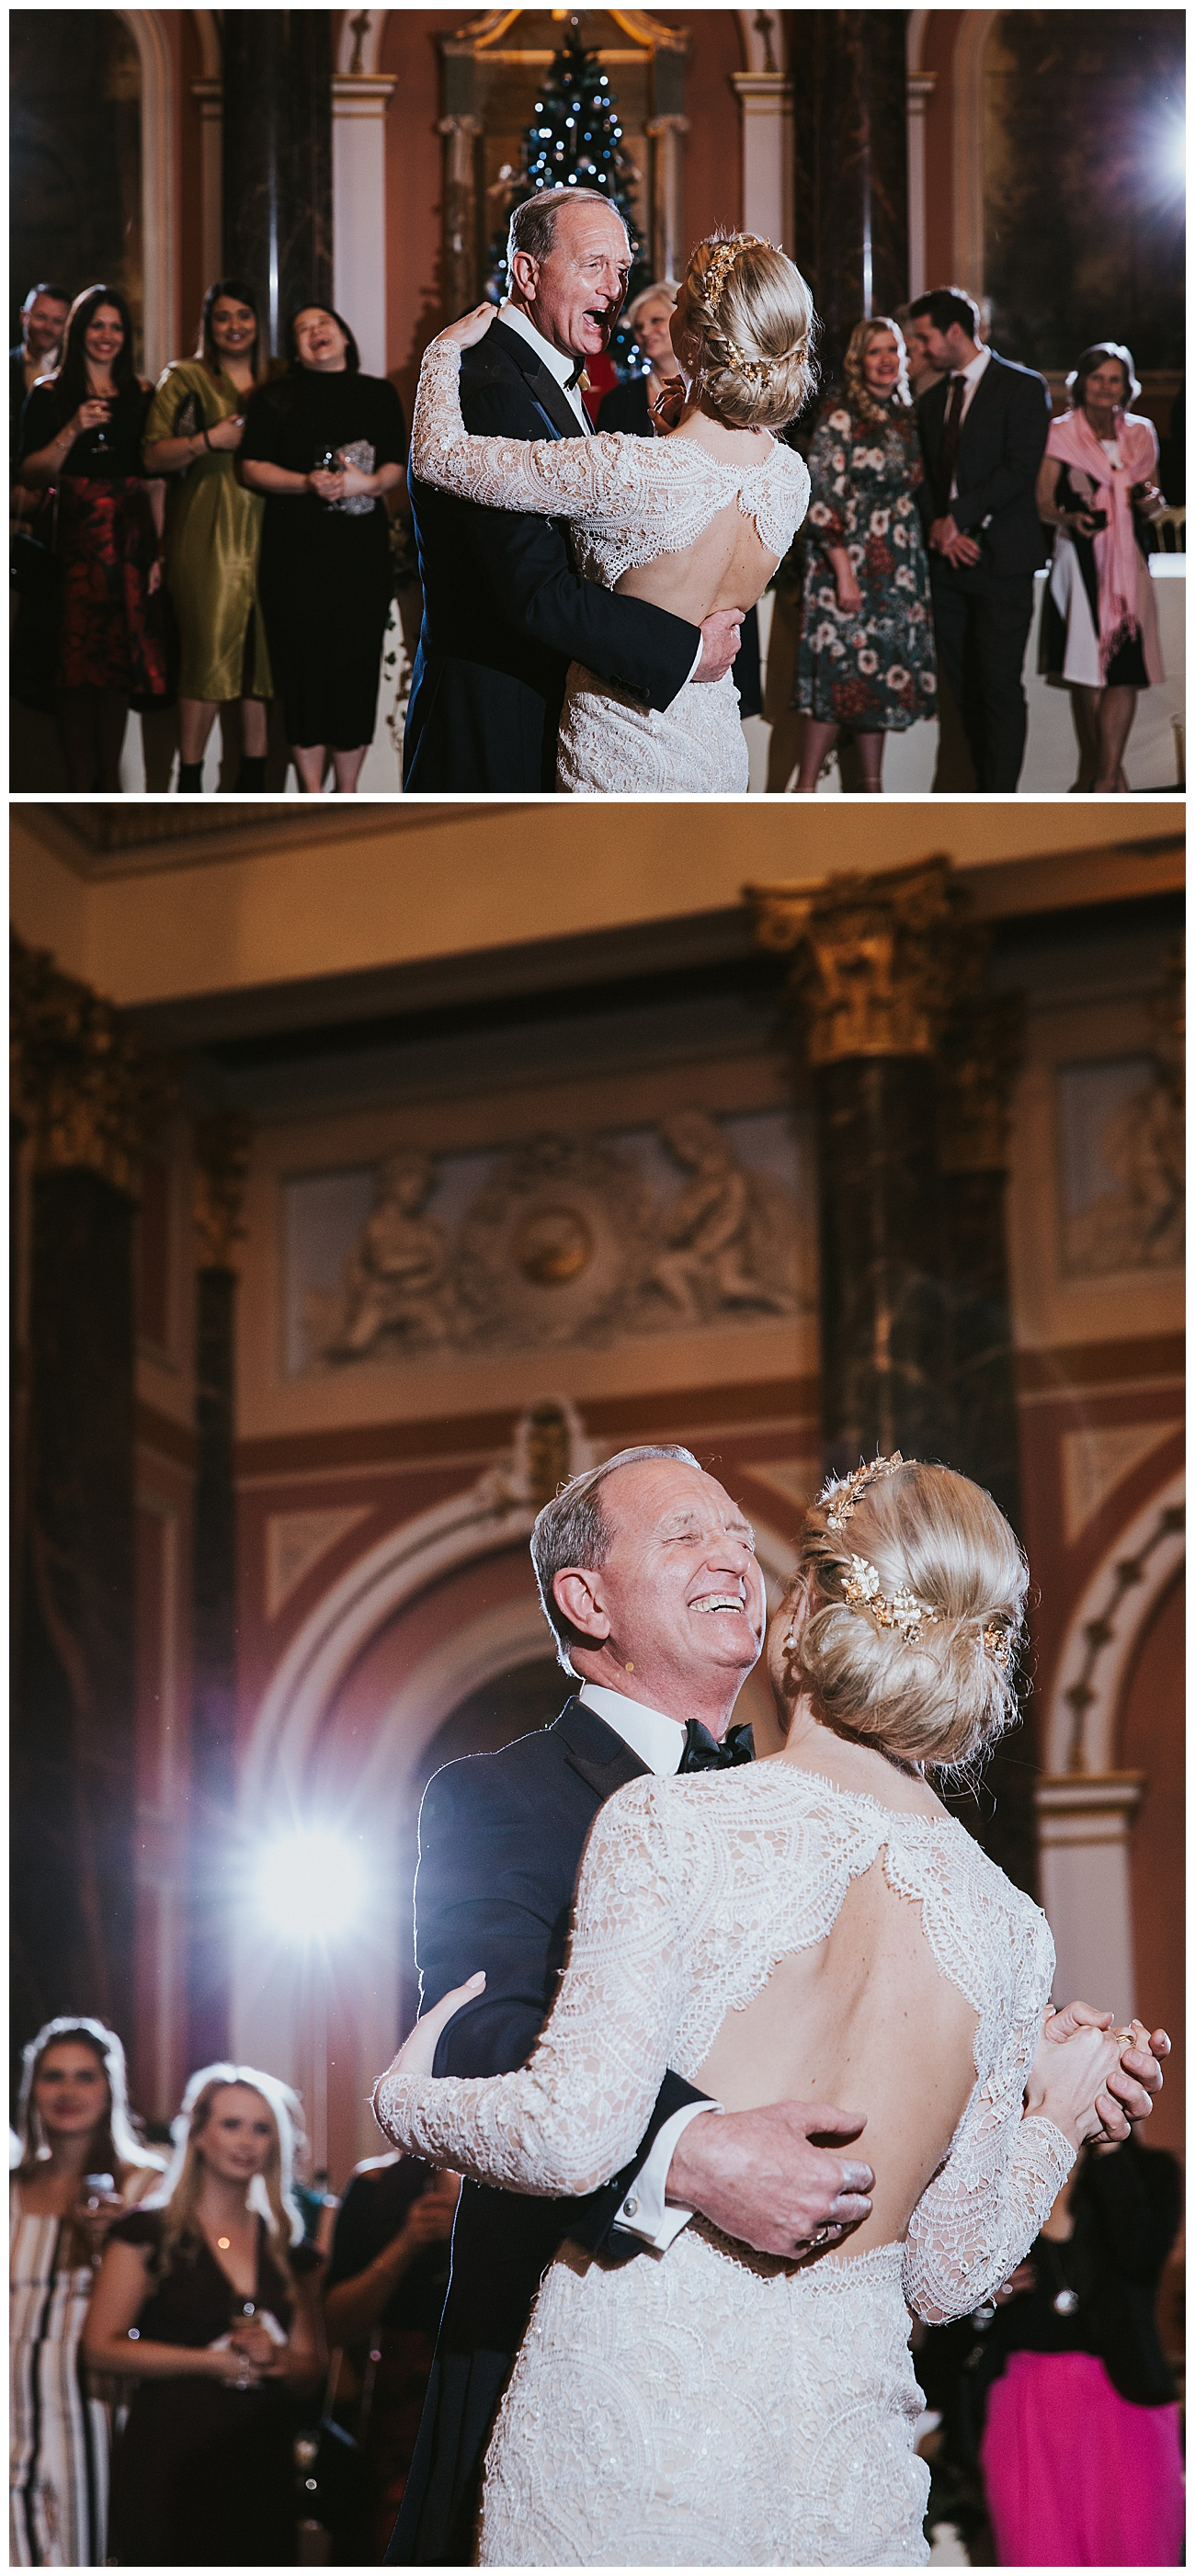 The bride and her dad dance on the dance floor